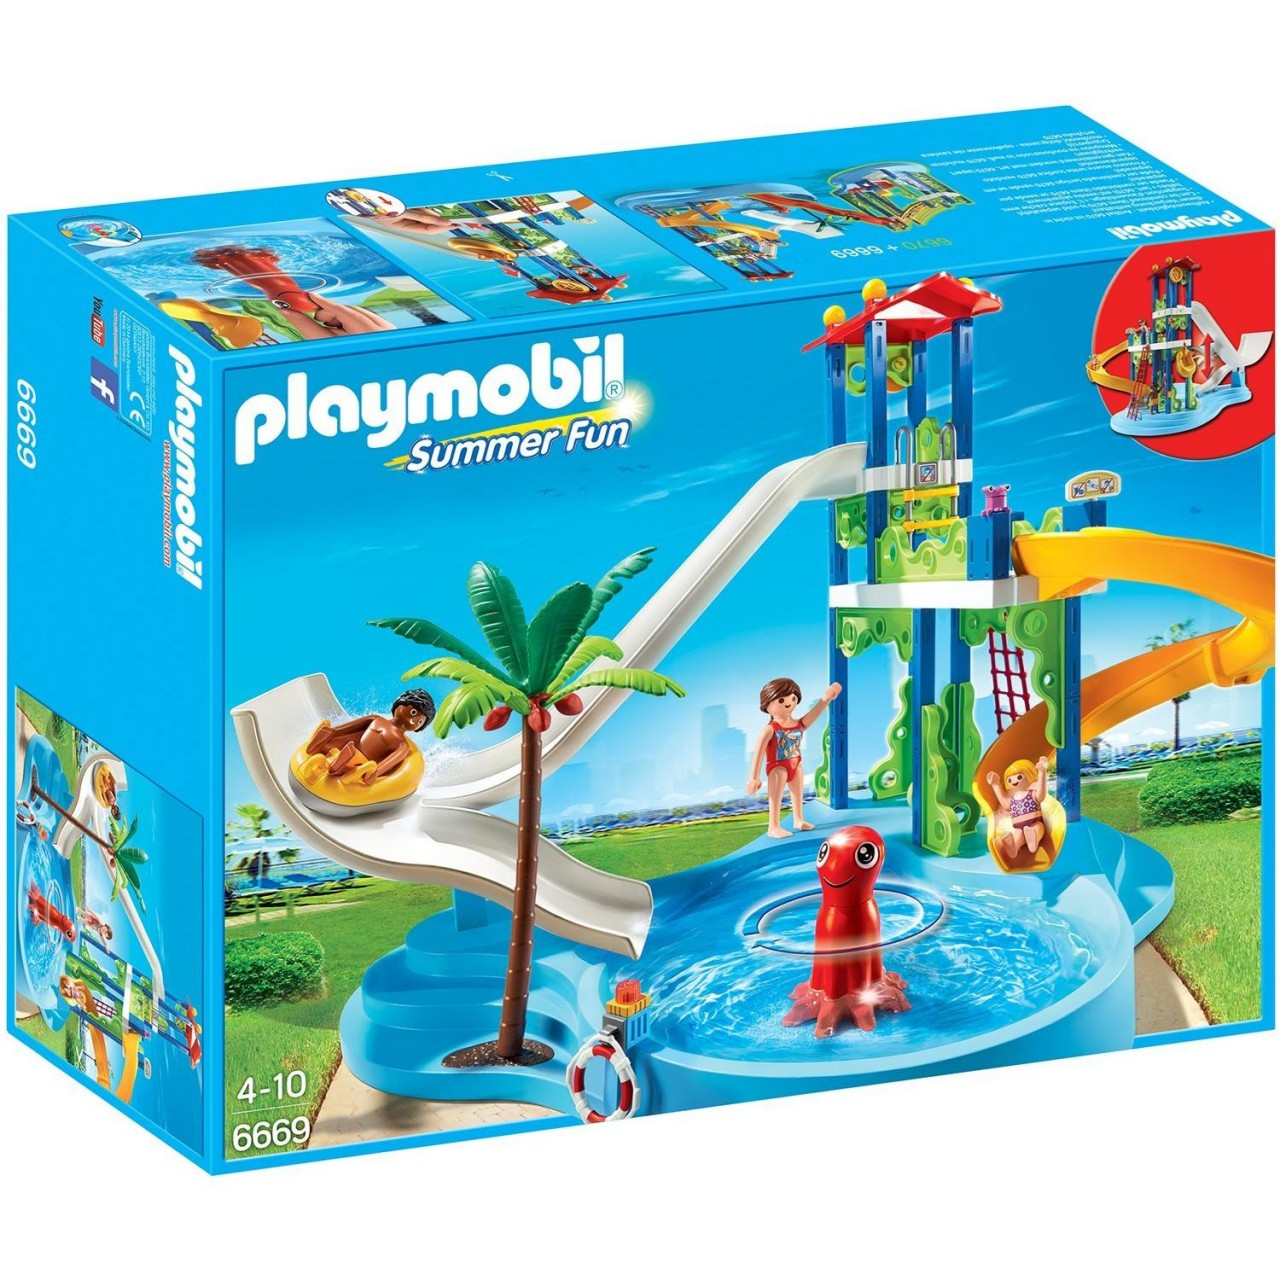 Playmobil 6669 Aquapark mit Rutschentower Summer Fun